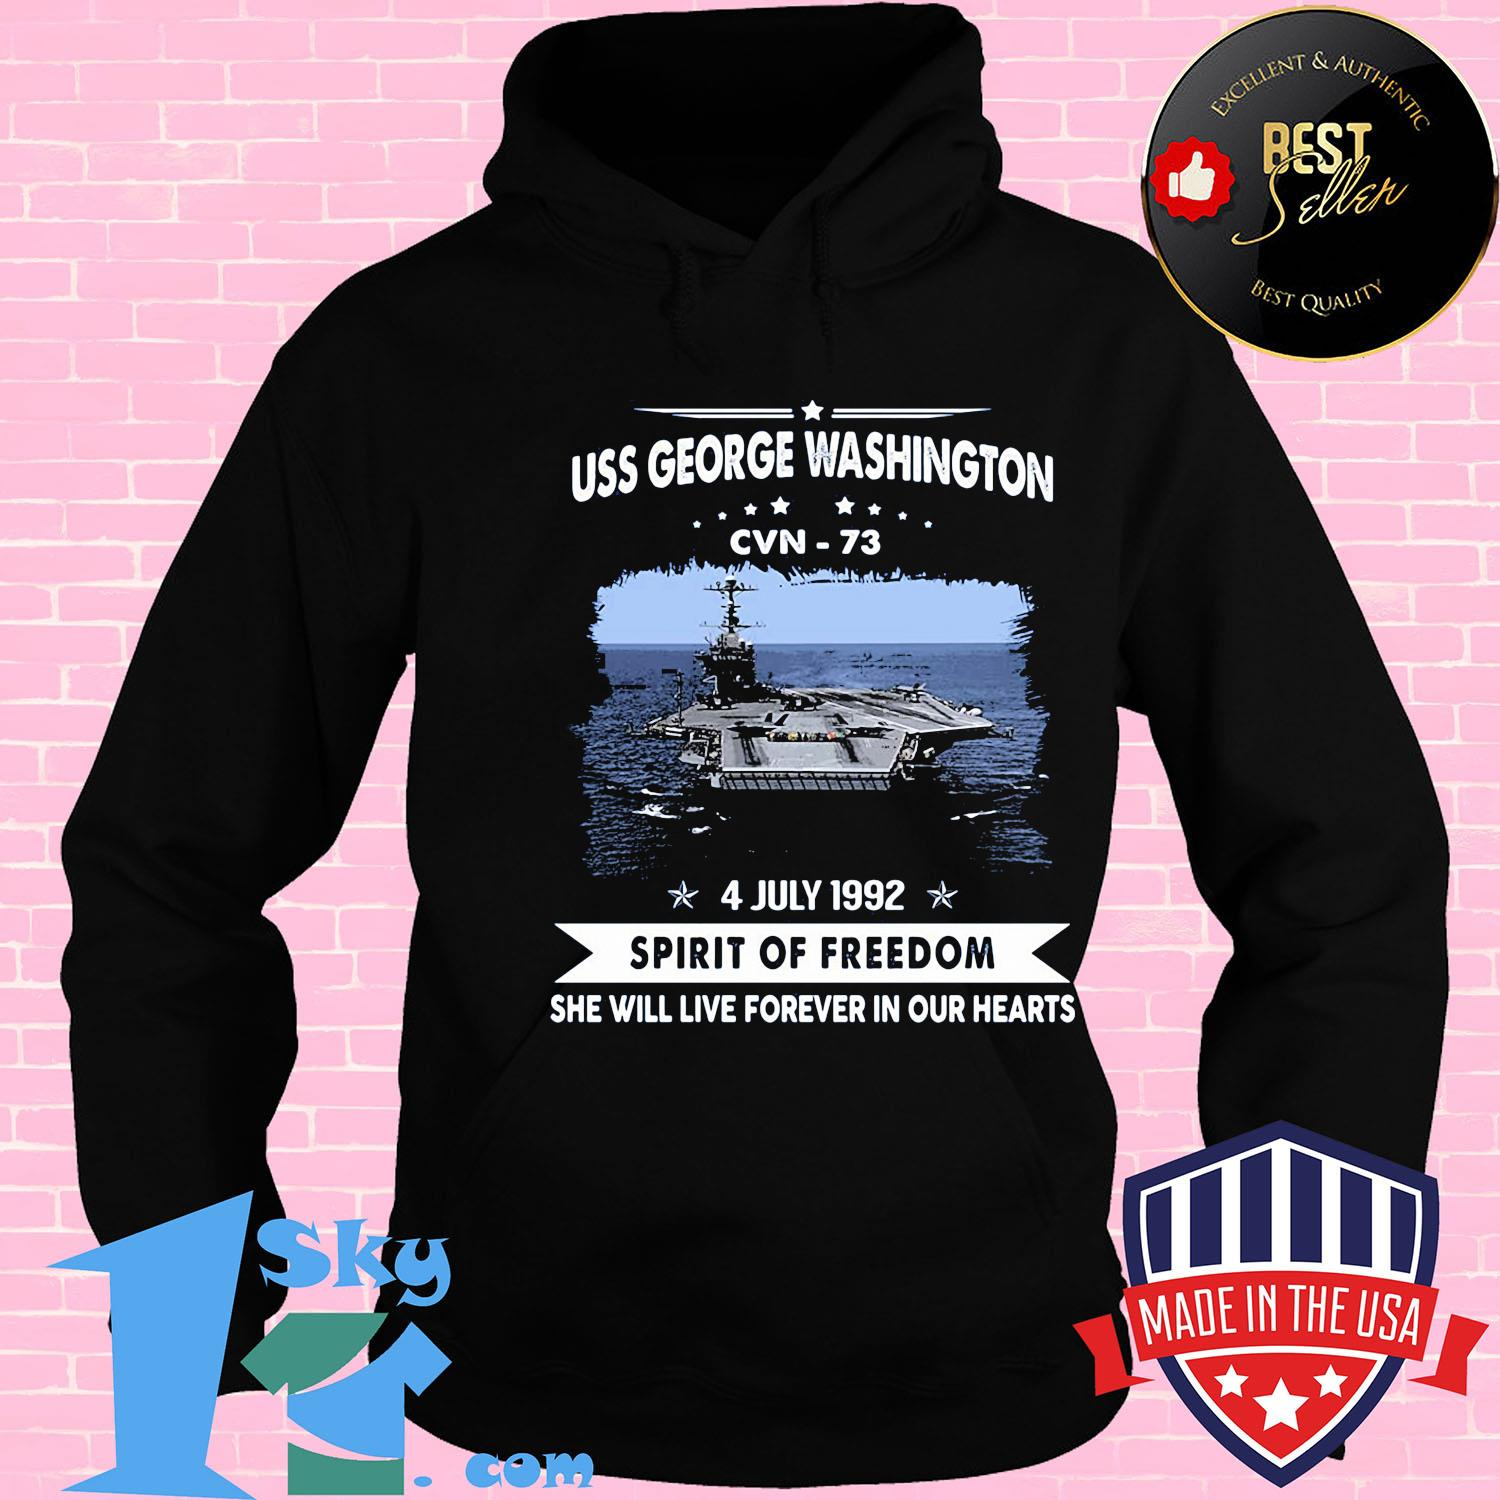 Uss george washington cvn 73 4 july 1992 spirit of freedom she will live forever in our hearts shirt